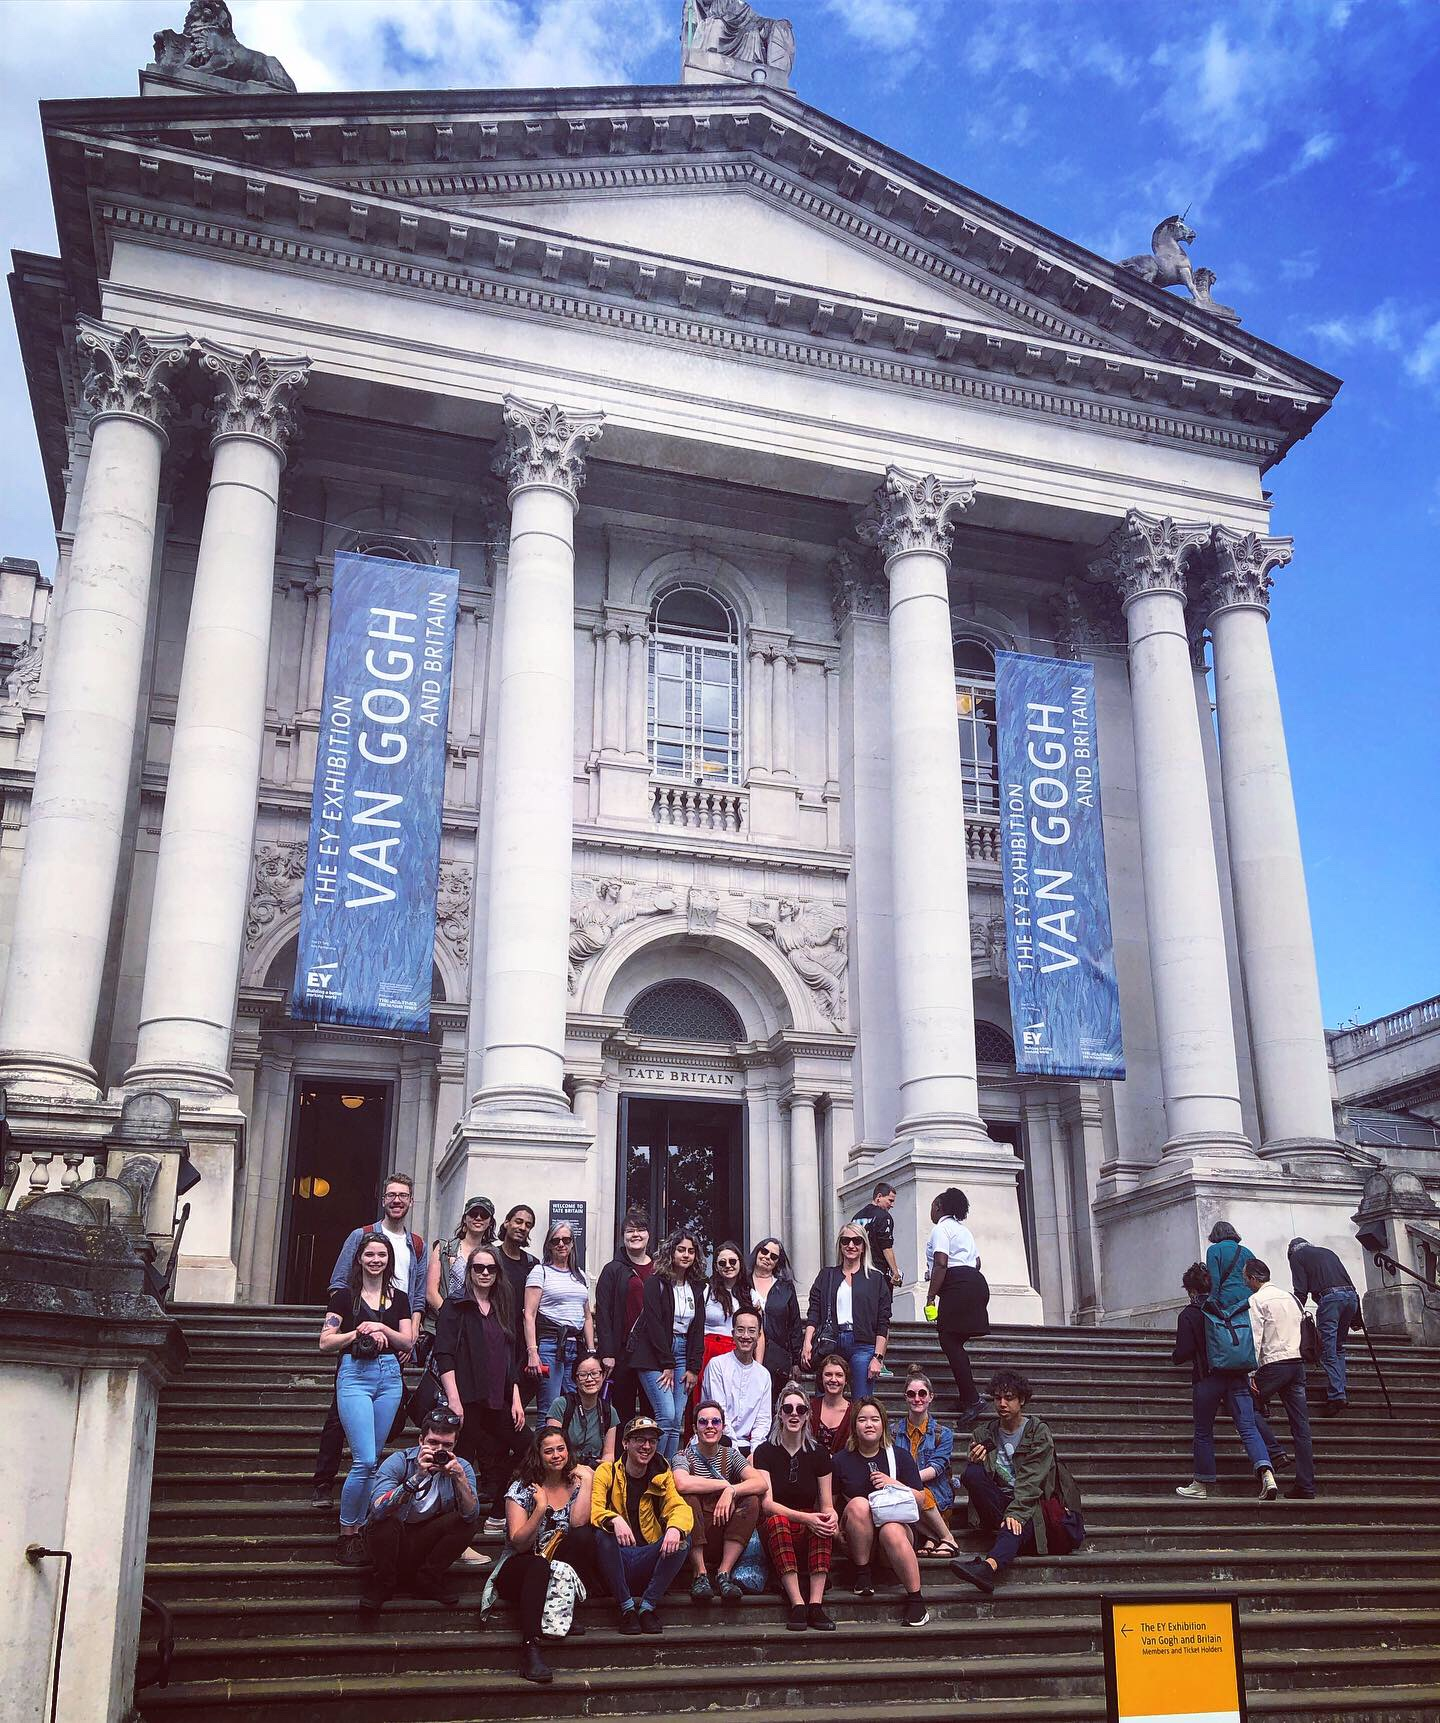 Group photo taken on the steps of the Tate Britain on our first full day of the field school.